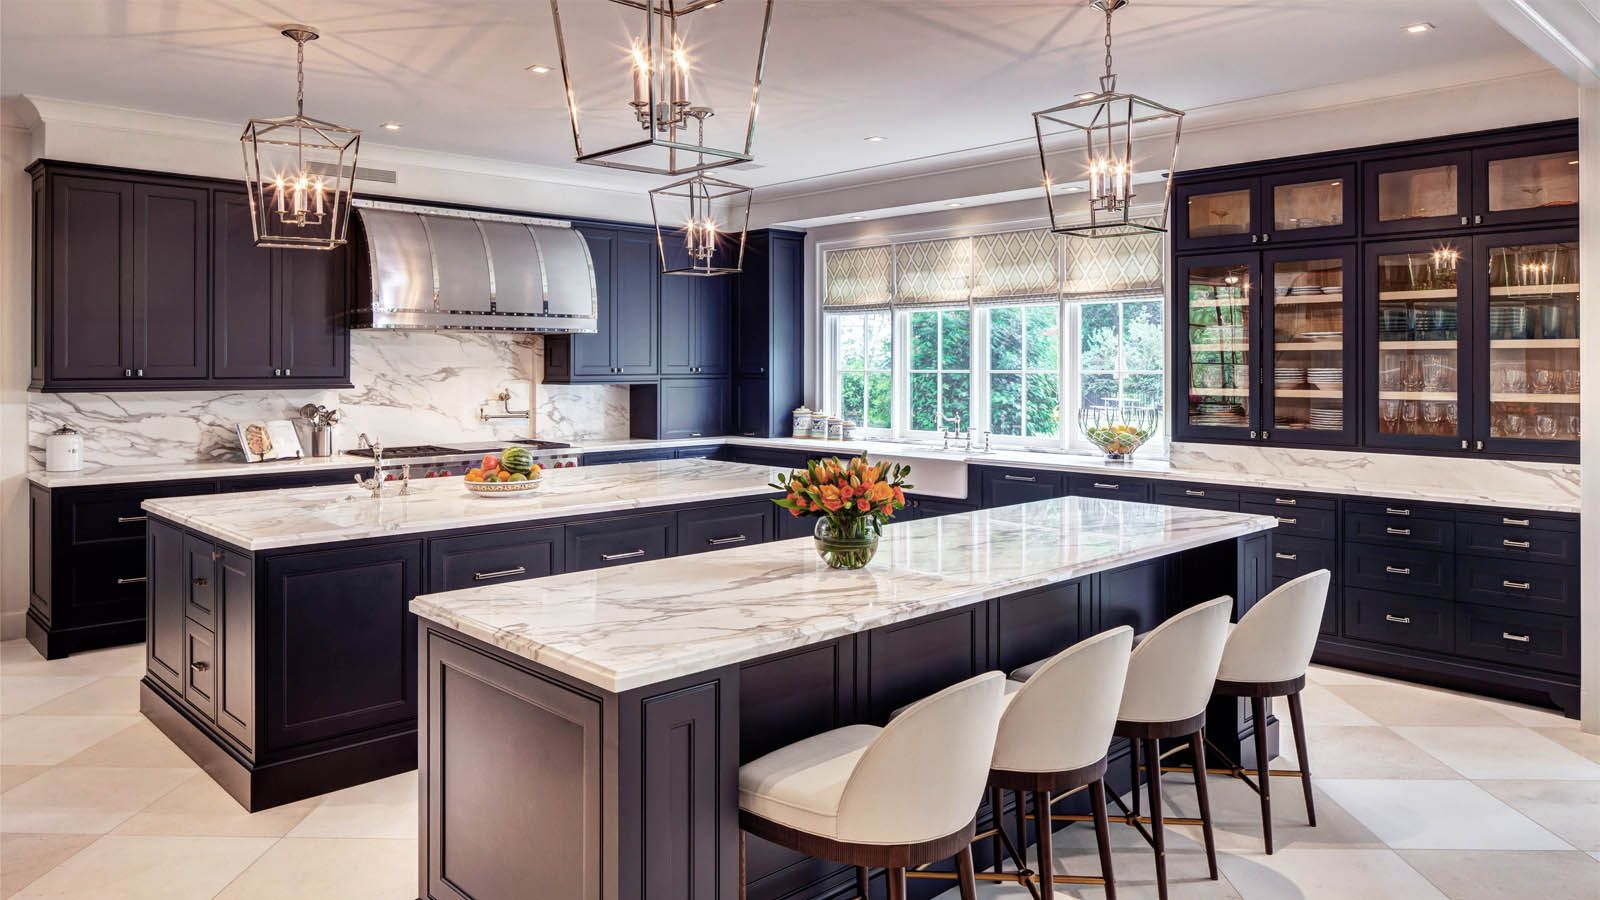 Transitional kitchen with black white and gray